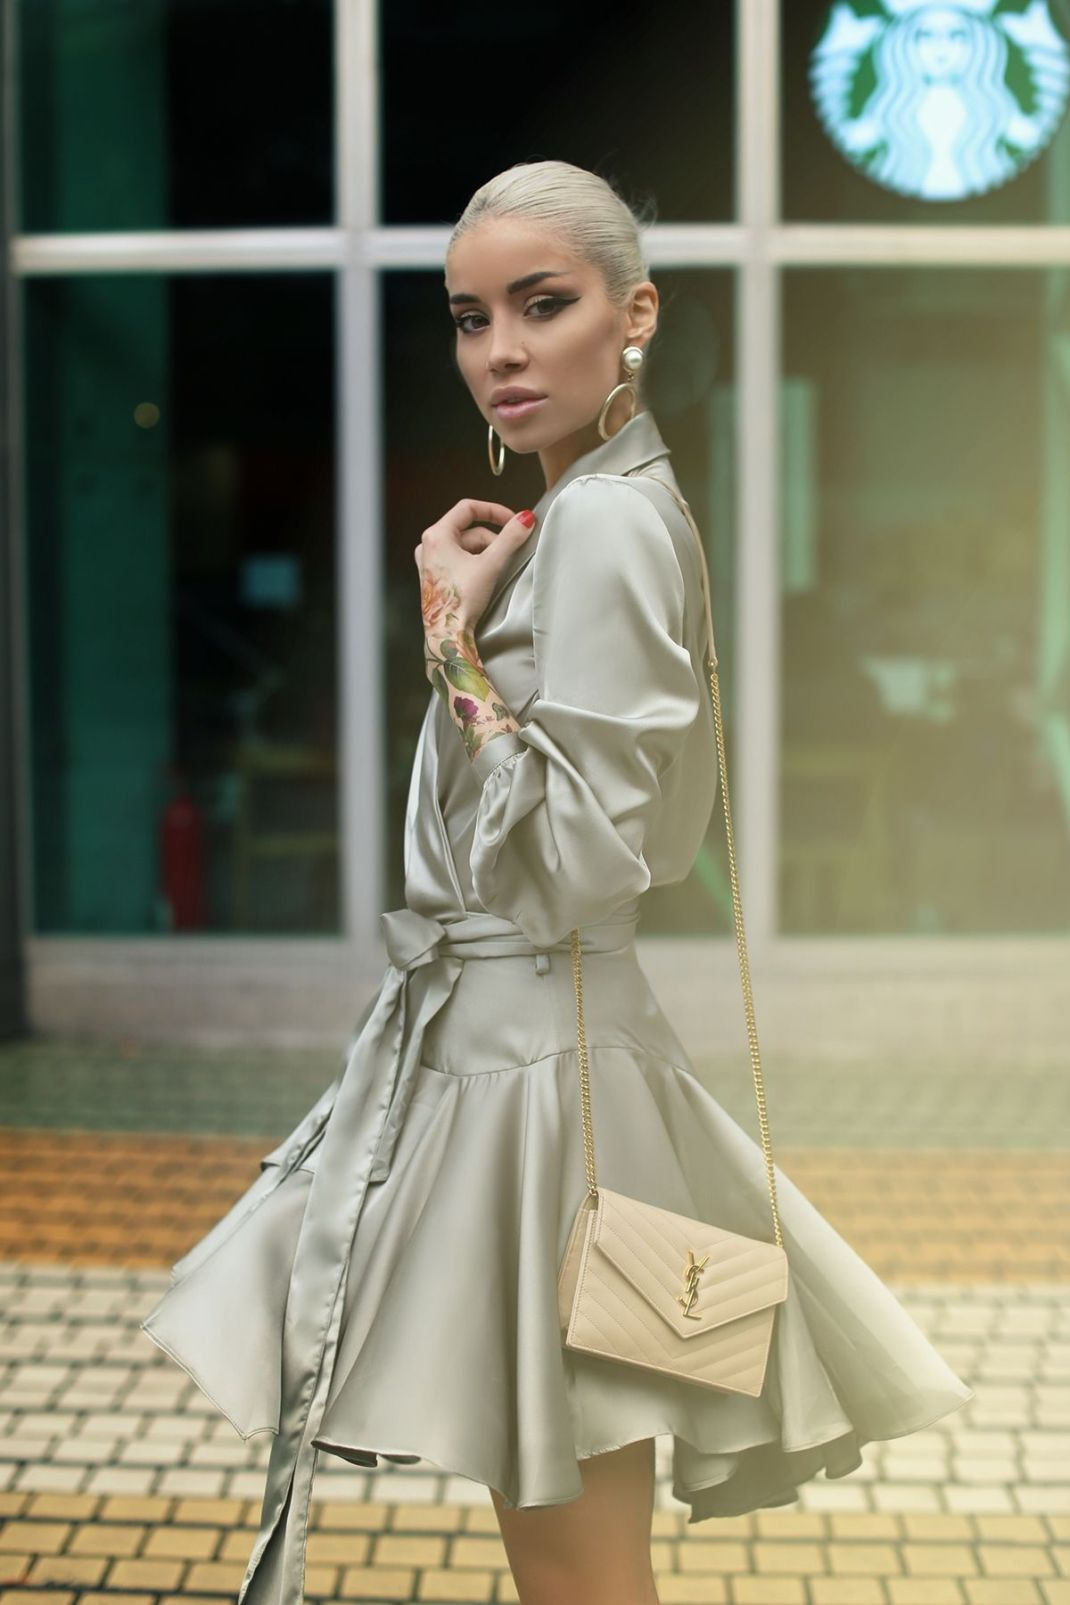 Kowloon Tong and The Olive Dress